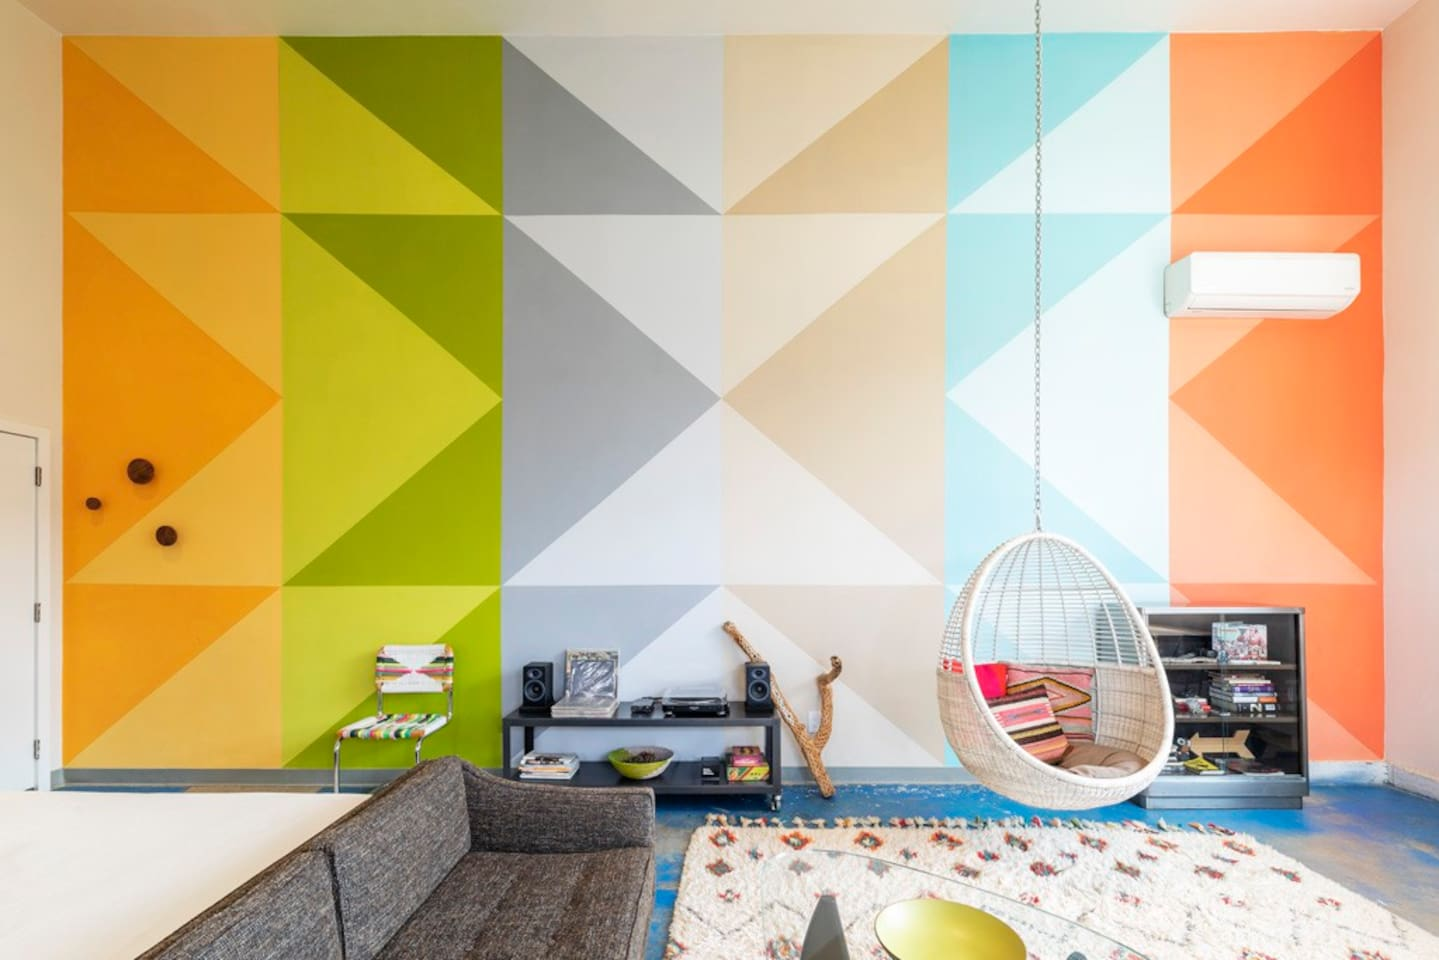 Enjoy hanging out inside by our huge 27 x 15' mural by local Joshua Tree artist Xihomara Alvarez. It's based on quilt patterns and colors in the local landscape.